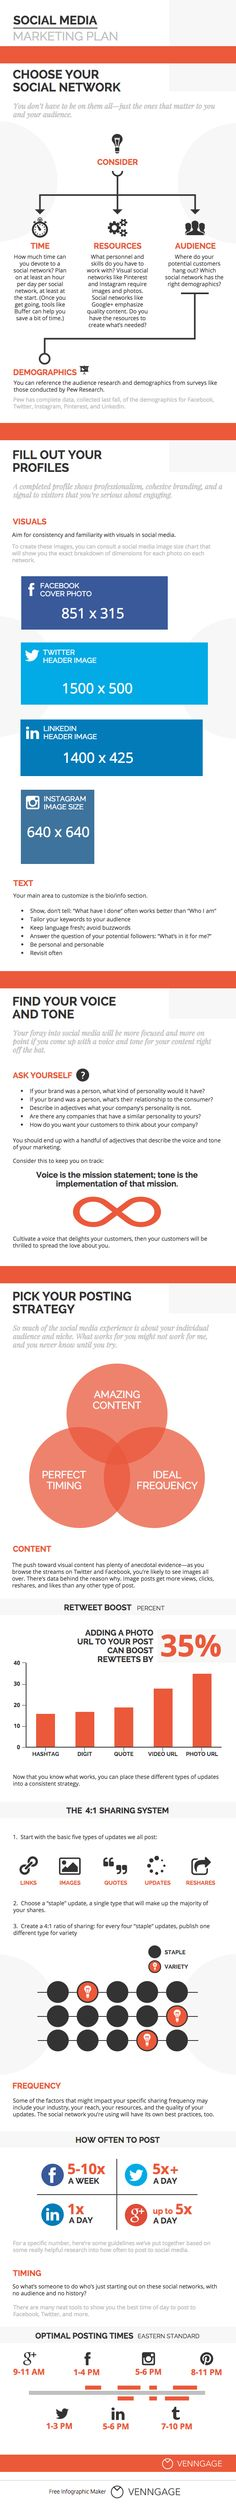 How to Create a Social-Media Marketing Plan From Scratch #infographic